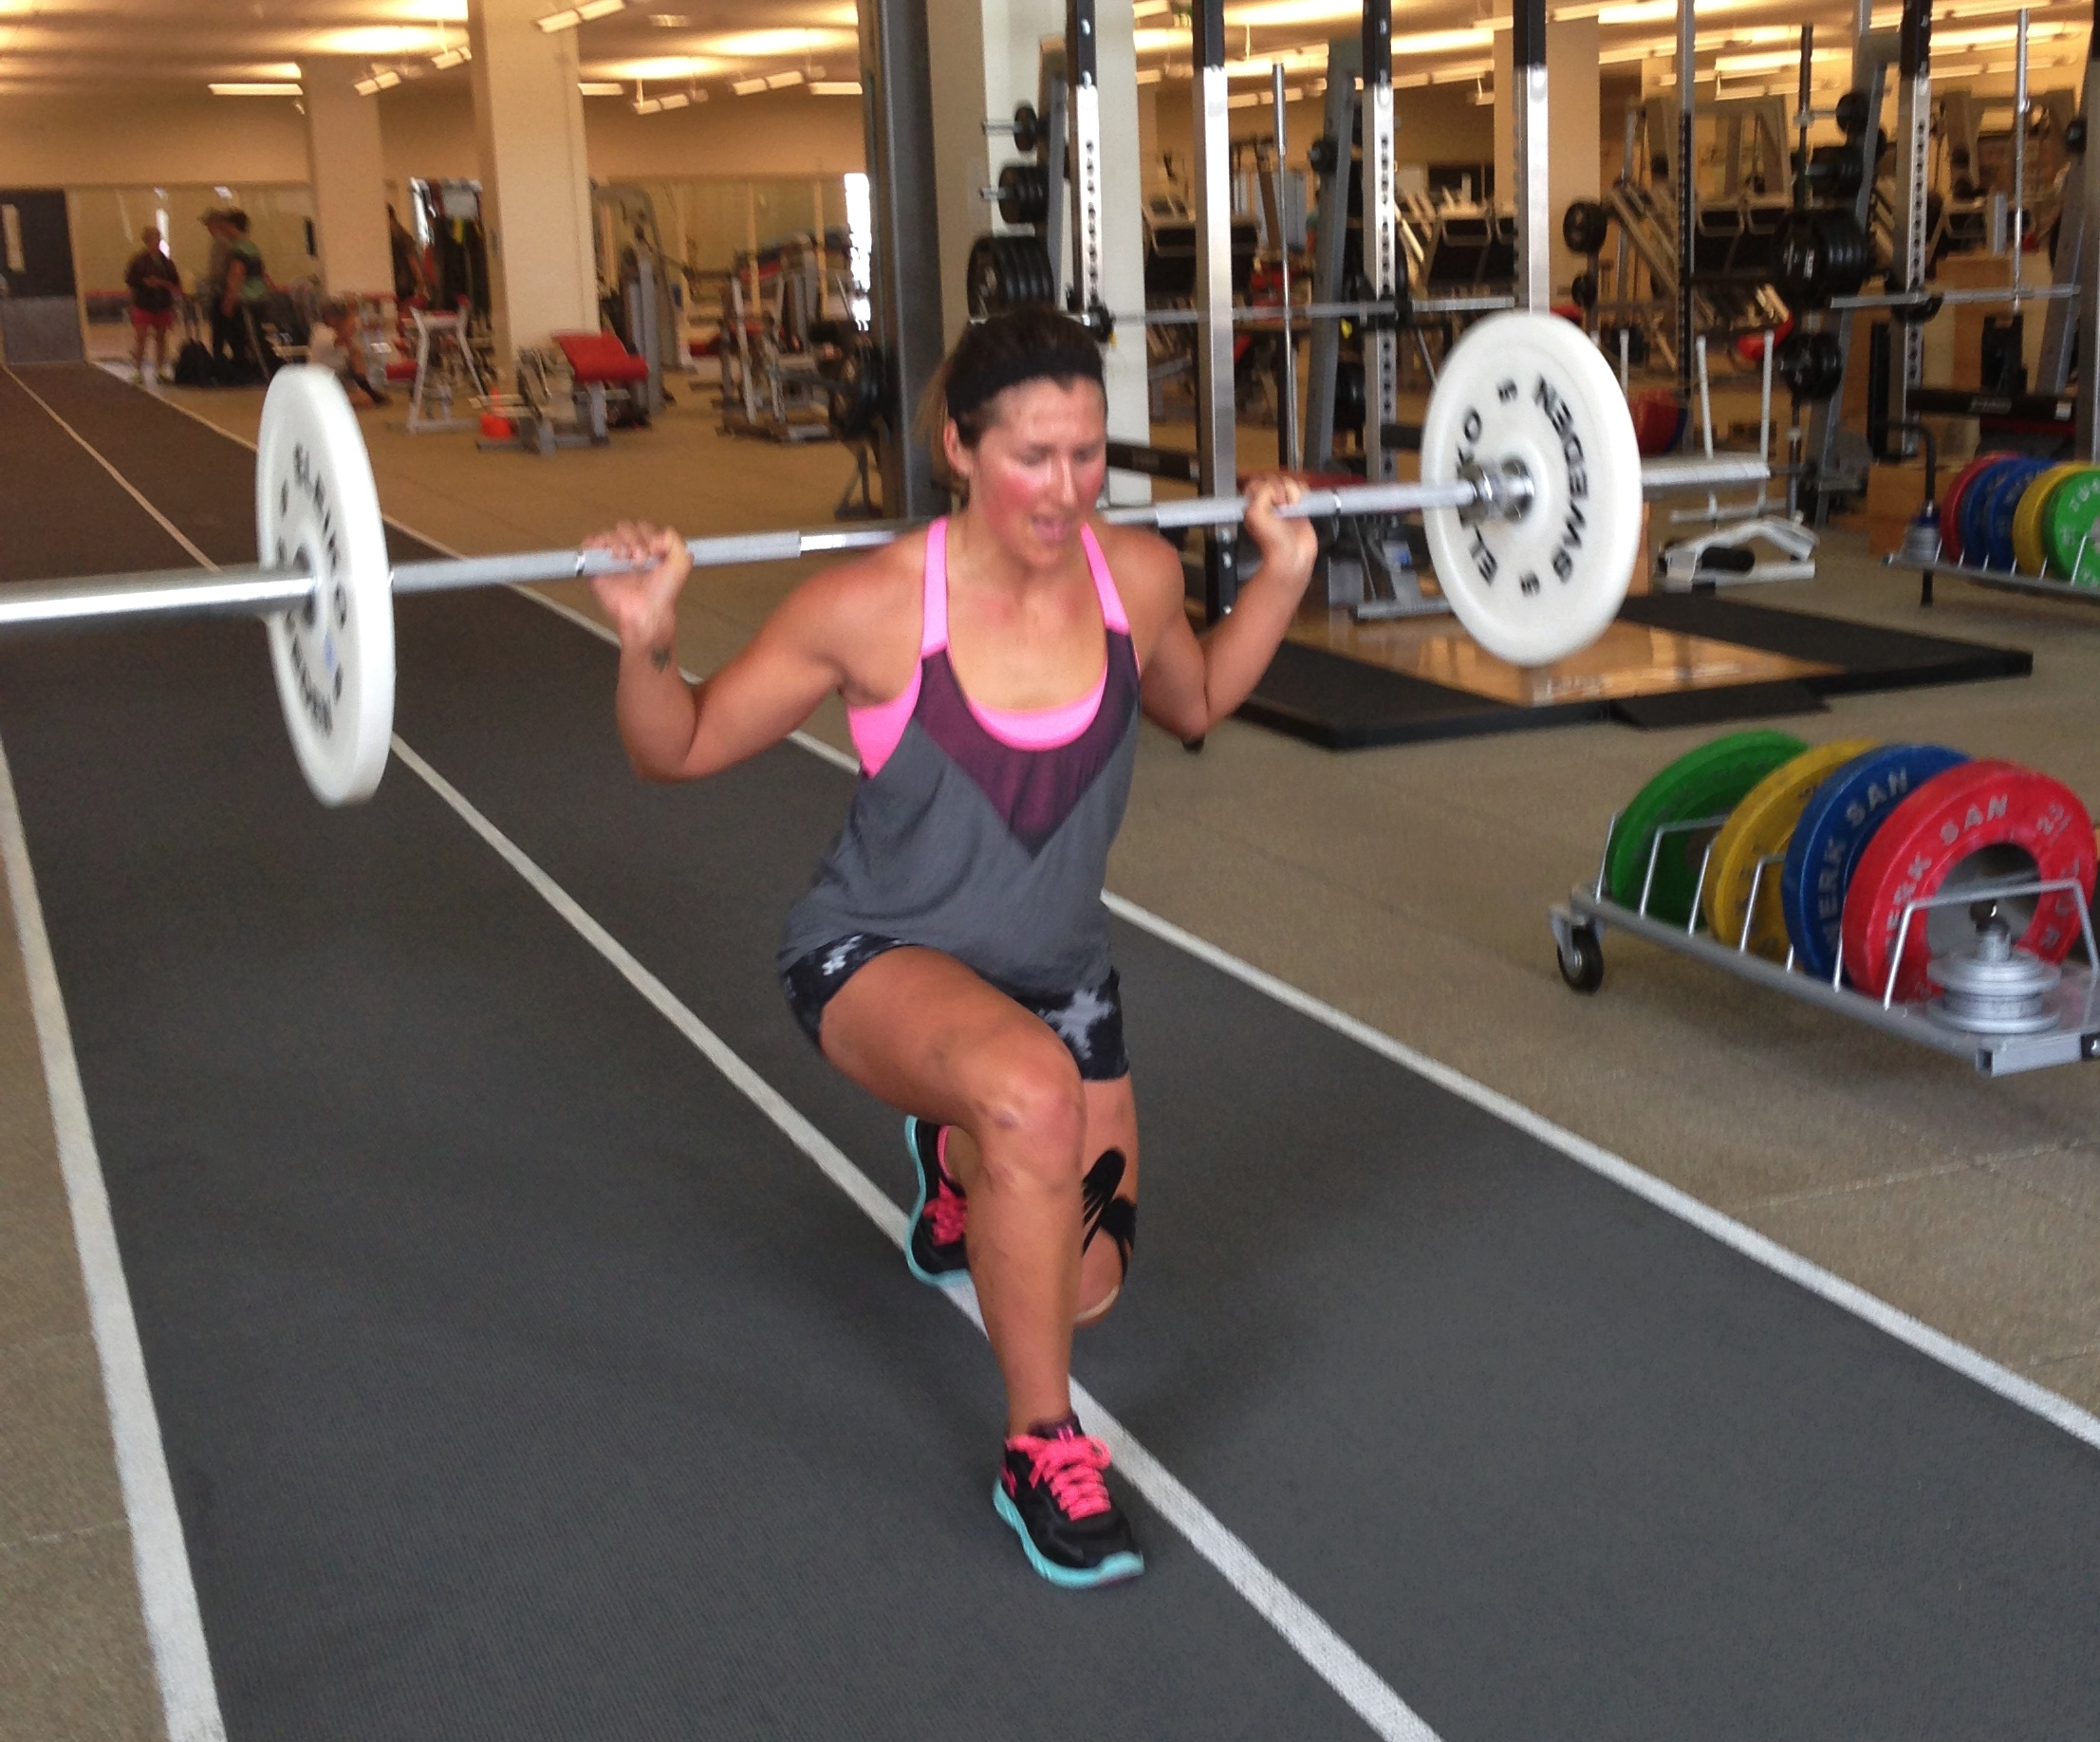 Walking Lunges: Stand with dumbbells grasped to sides or a barbell on your shoulders. Step forward with first leg. Land on heel then forefoot. Lower body by flexing knee and hip of front leg until knee of rear leg is almost in contact with floor. Stand on forward leg with assistance of rear leg. Lunge forward with opposite leg. Repeat by alternating lunge with opposite legs.